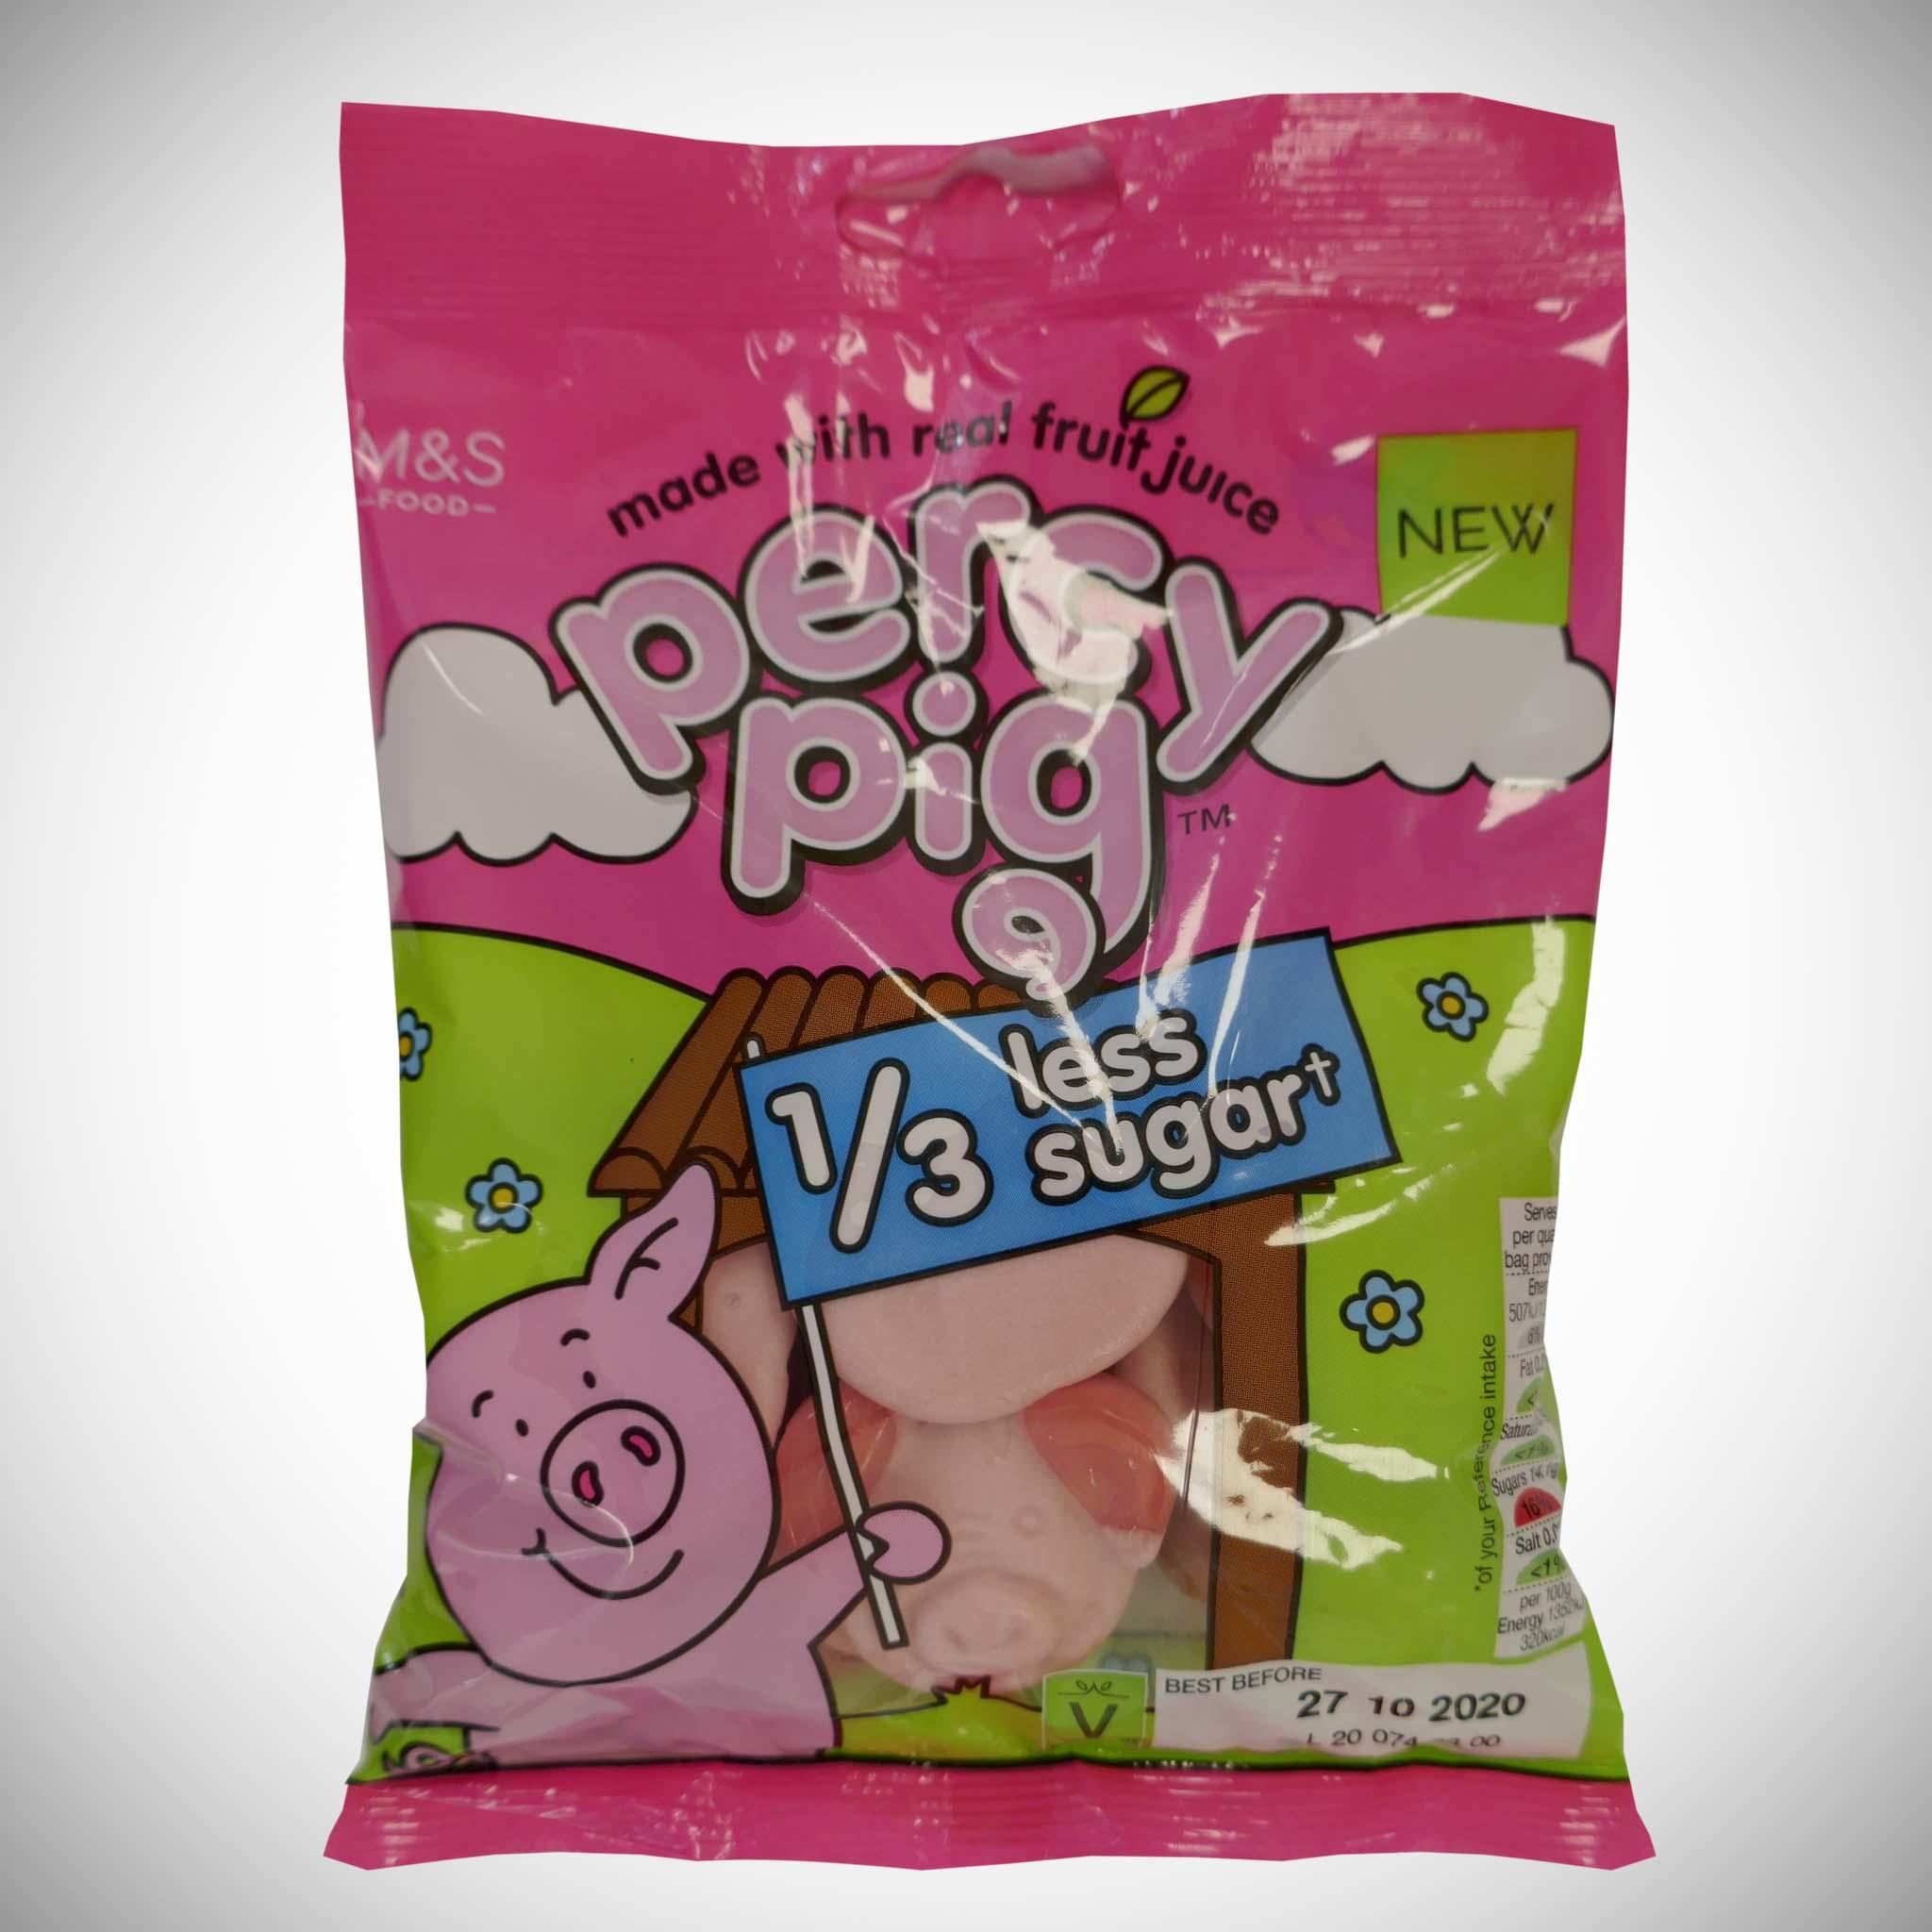 Reduced Sugar Percy 150g